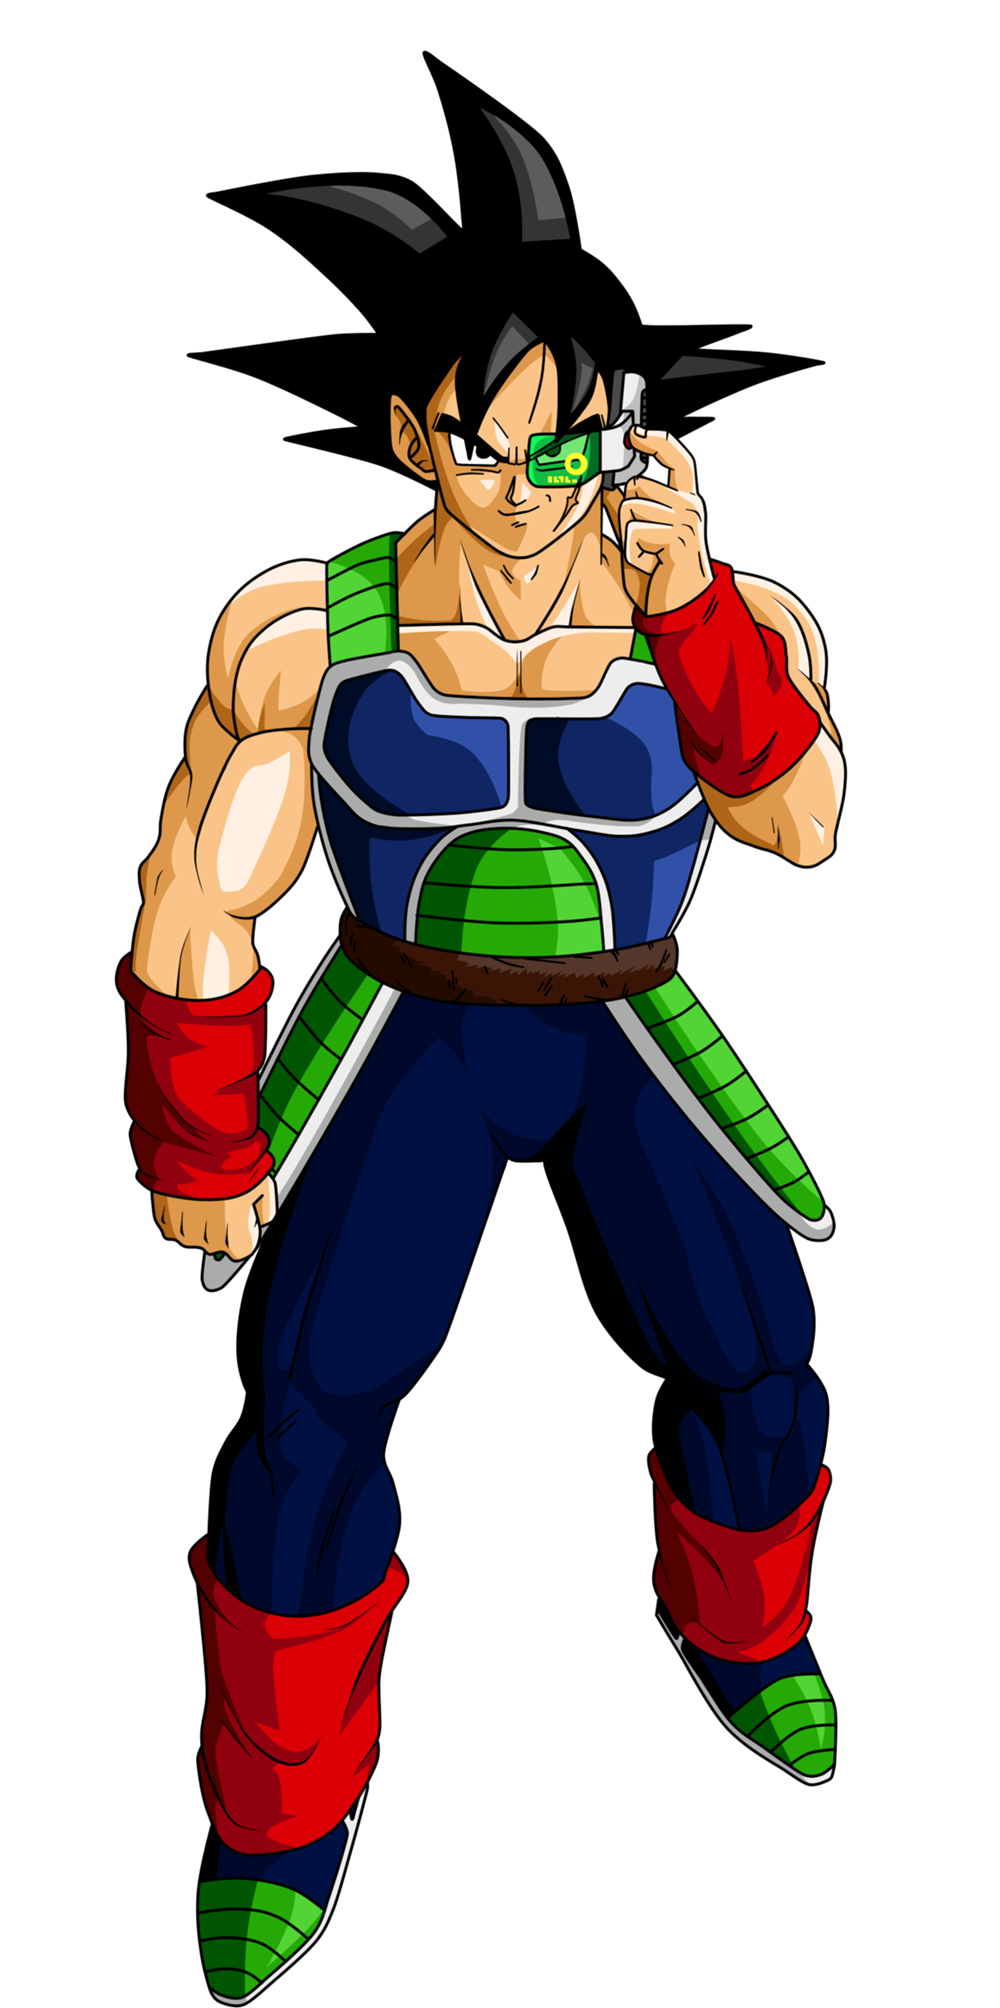 Bardock | Dragon Ball Wiki | FANDOM powered by Wikia